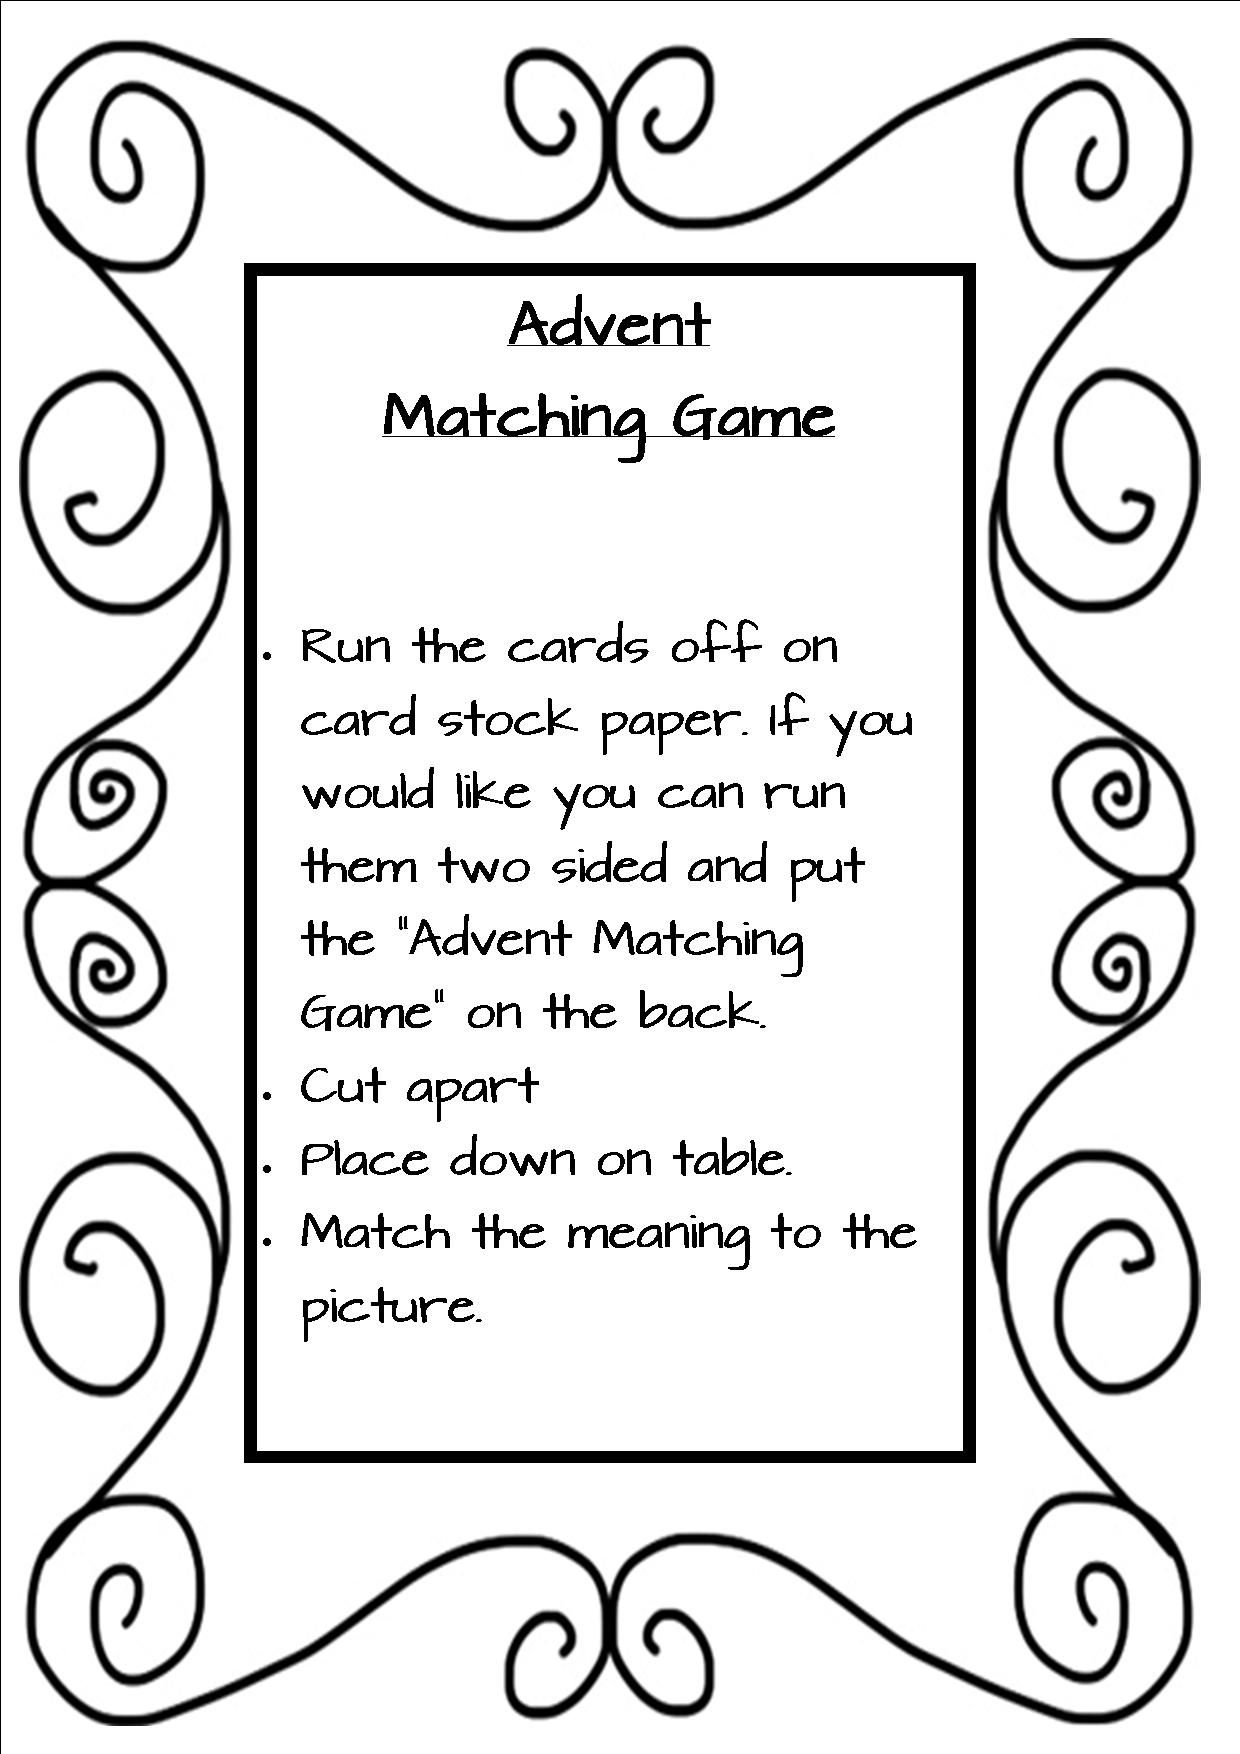 Advent Matching Game